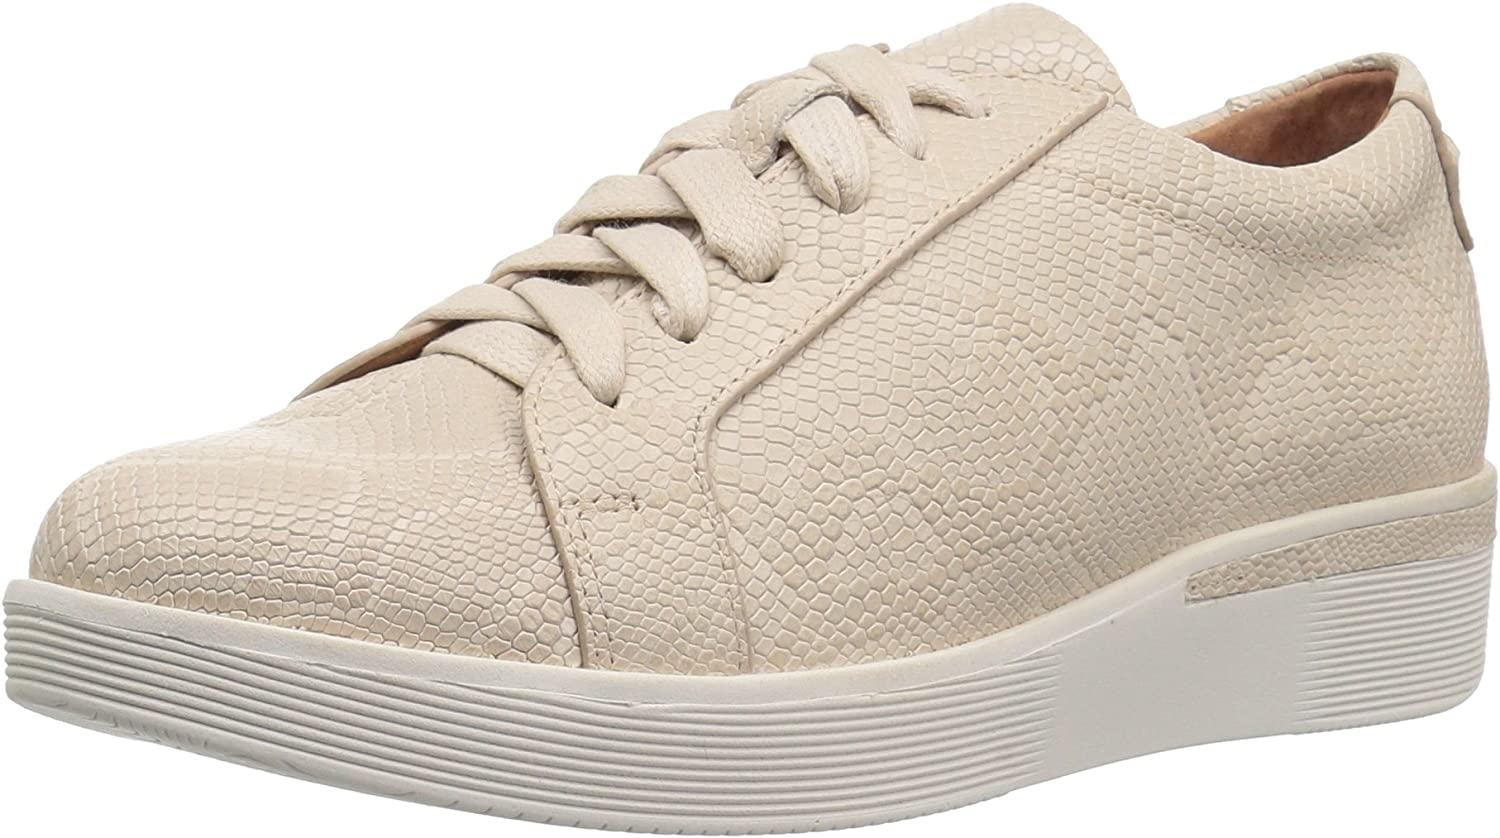 Gentle Souls Womens Haddie Platform Lace-up Fashion Sneaker- Embossed Sneaker